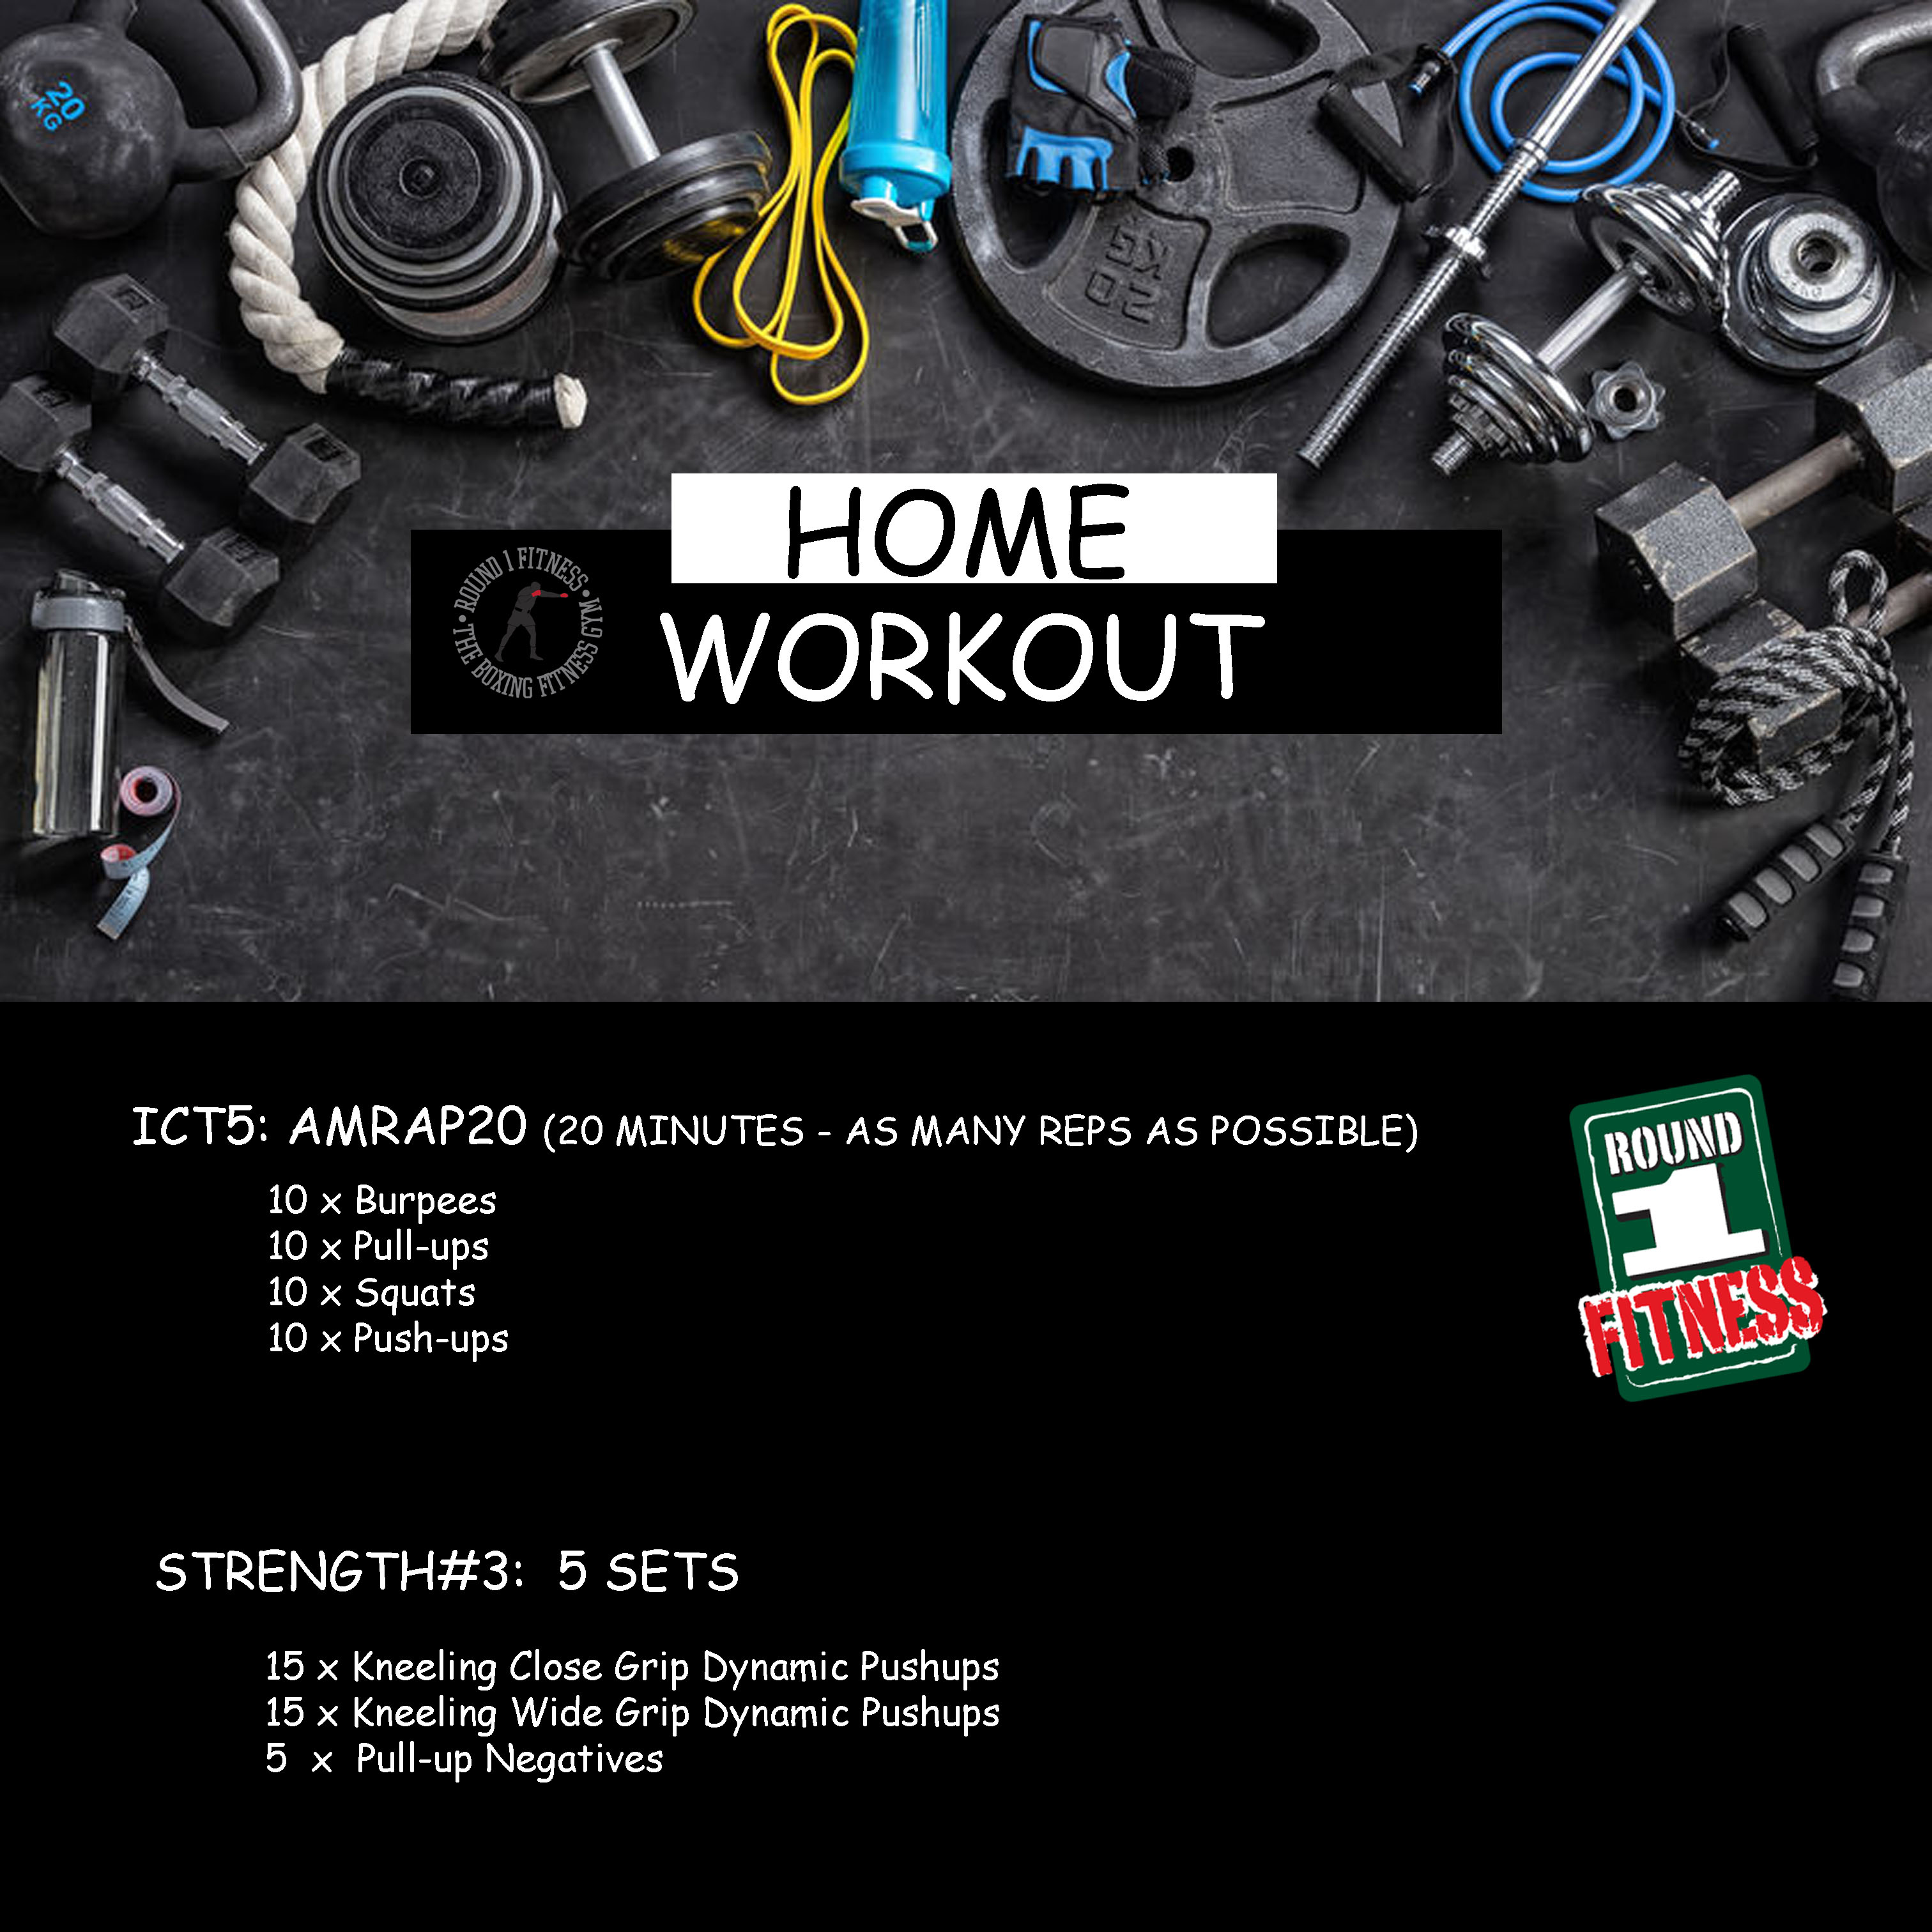 Home Workout:  Friday, May 15th